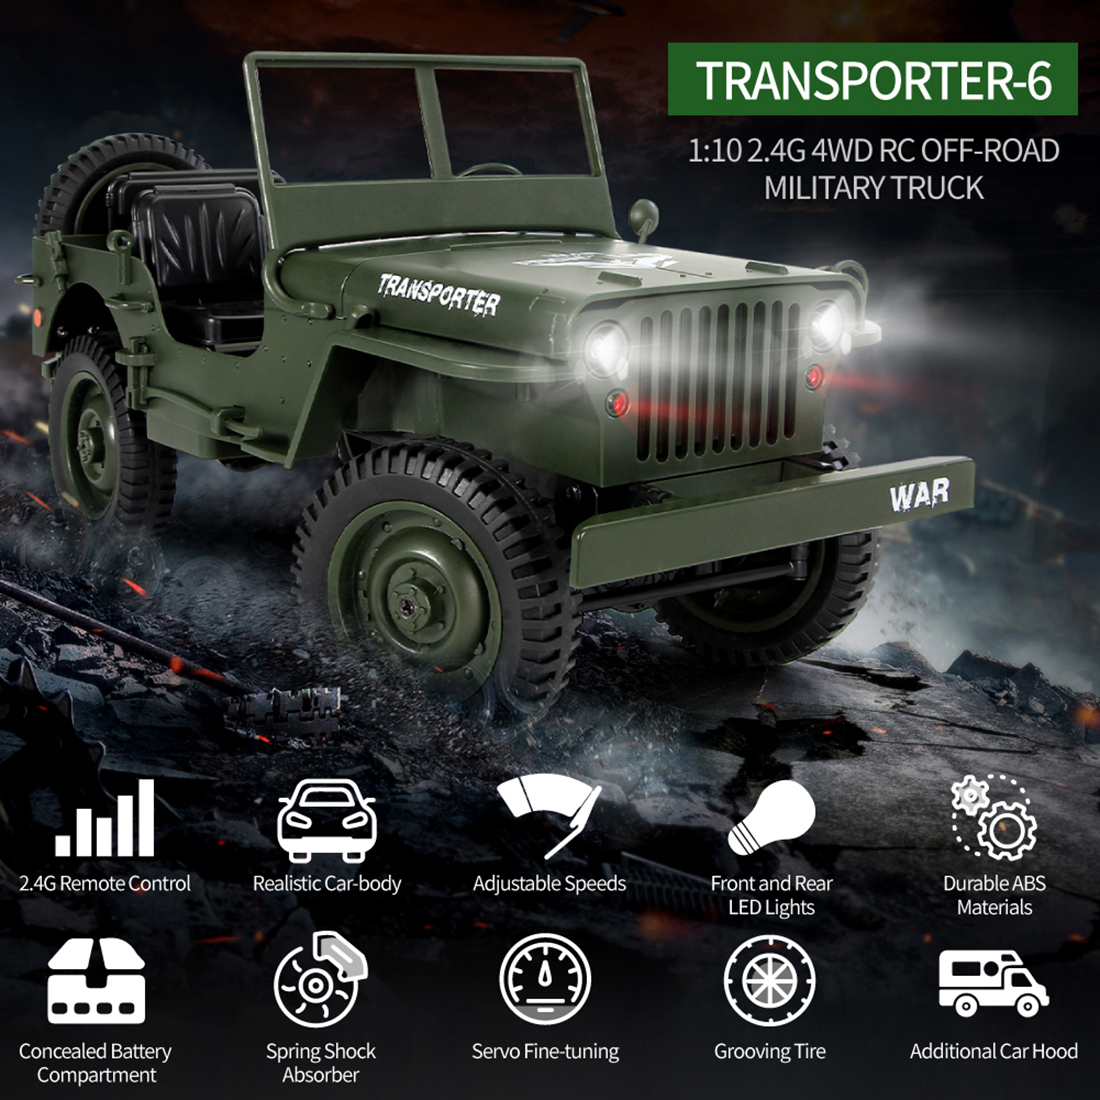 Rowsfire 1 10 2 4g 4wd Rc Trucks Remote Control Toys Off road Vehicle Military Climbing